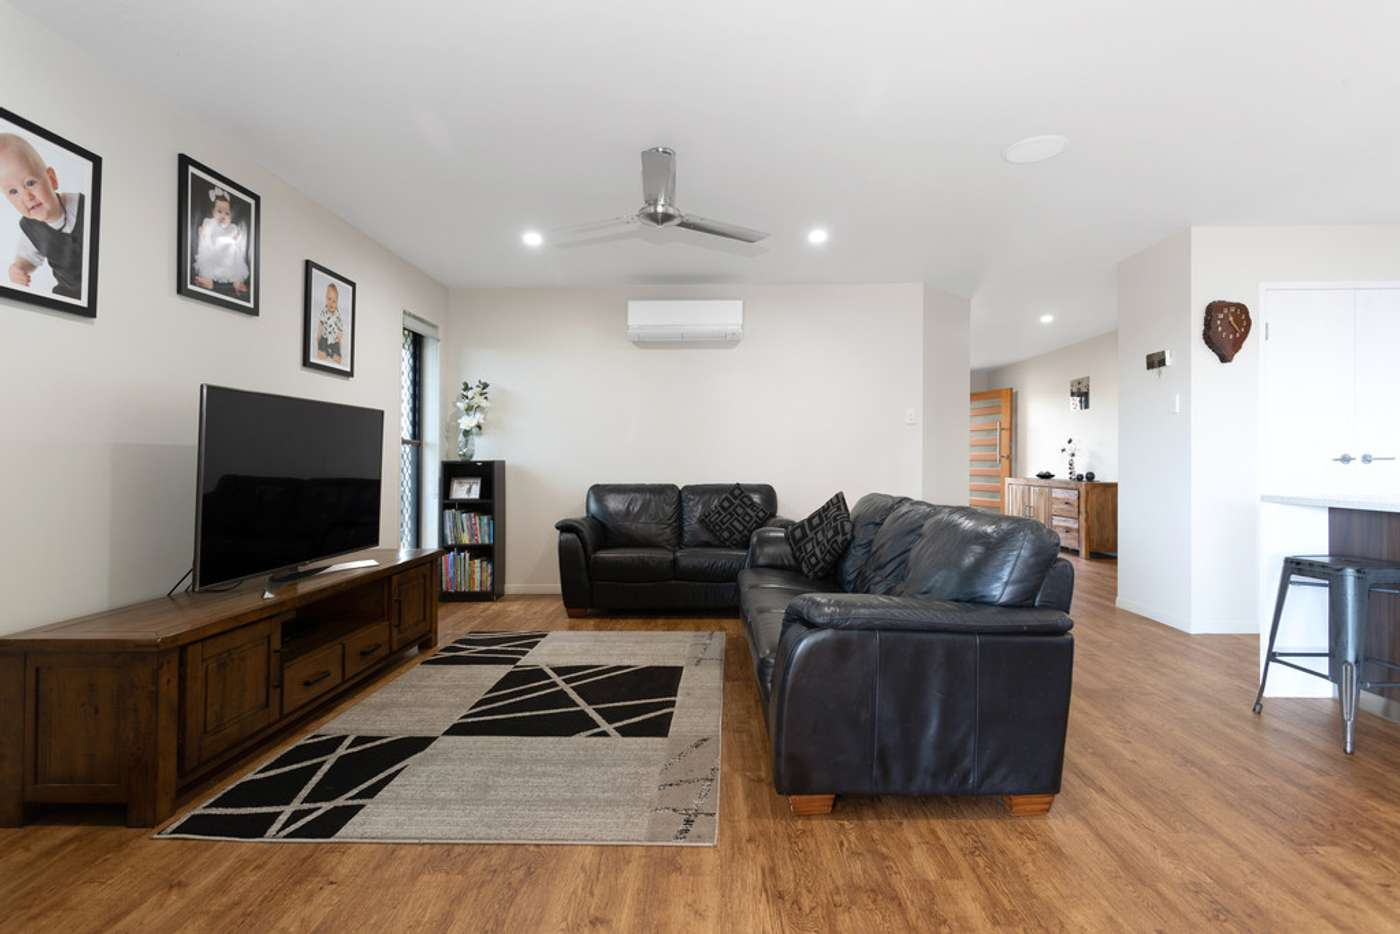 Fifth view of Homely house listing, 2 Roma Court, Beaconsfield QLD 4740